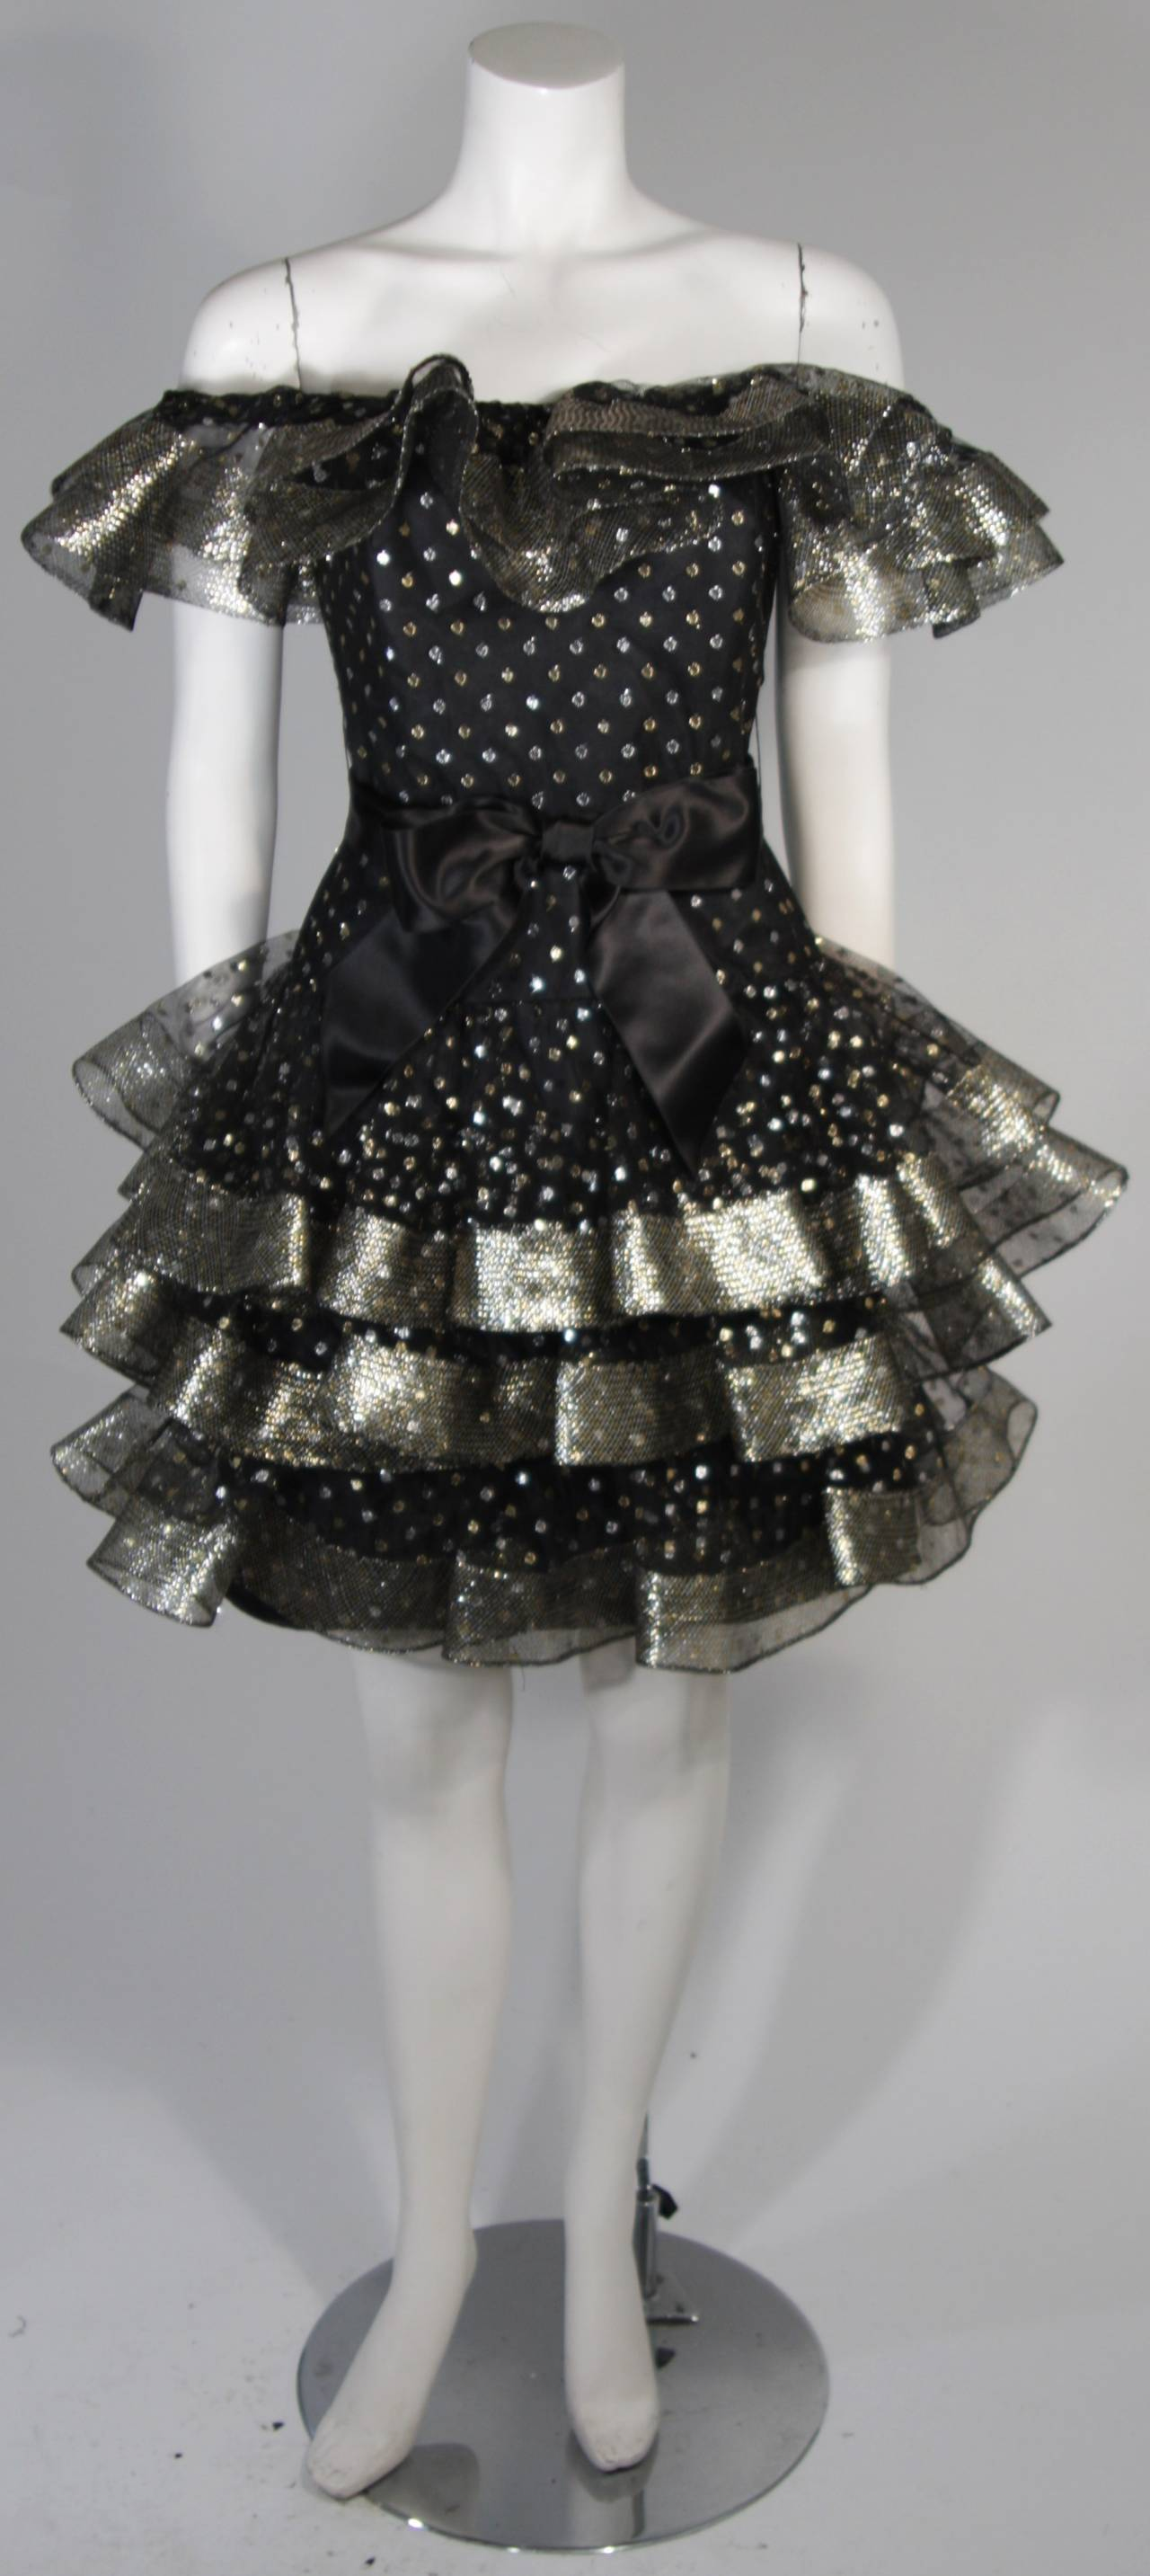 "This Victor Costa cocktail dress is fabricated from layers of black mesh fabric accented with silver and gold metallic polka dots. The ruffled hem lines are slightly structured due to the ""Horsehair"" braid hemline. There is a center back zipper. In"